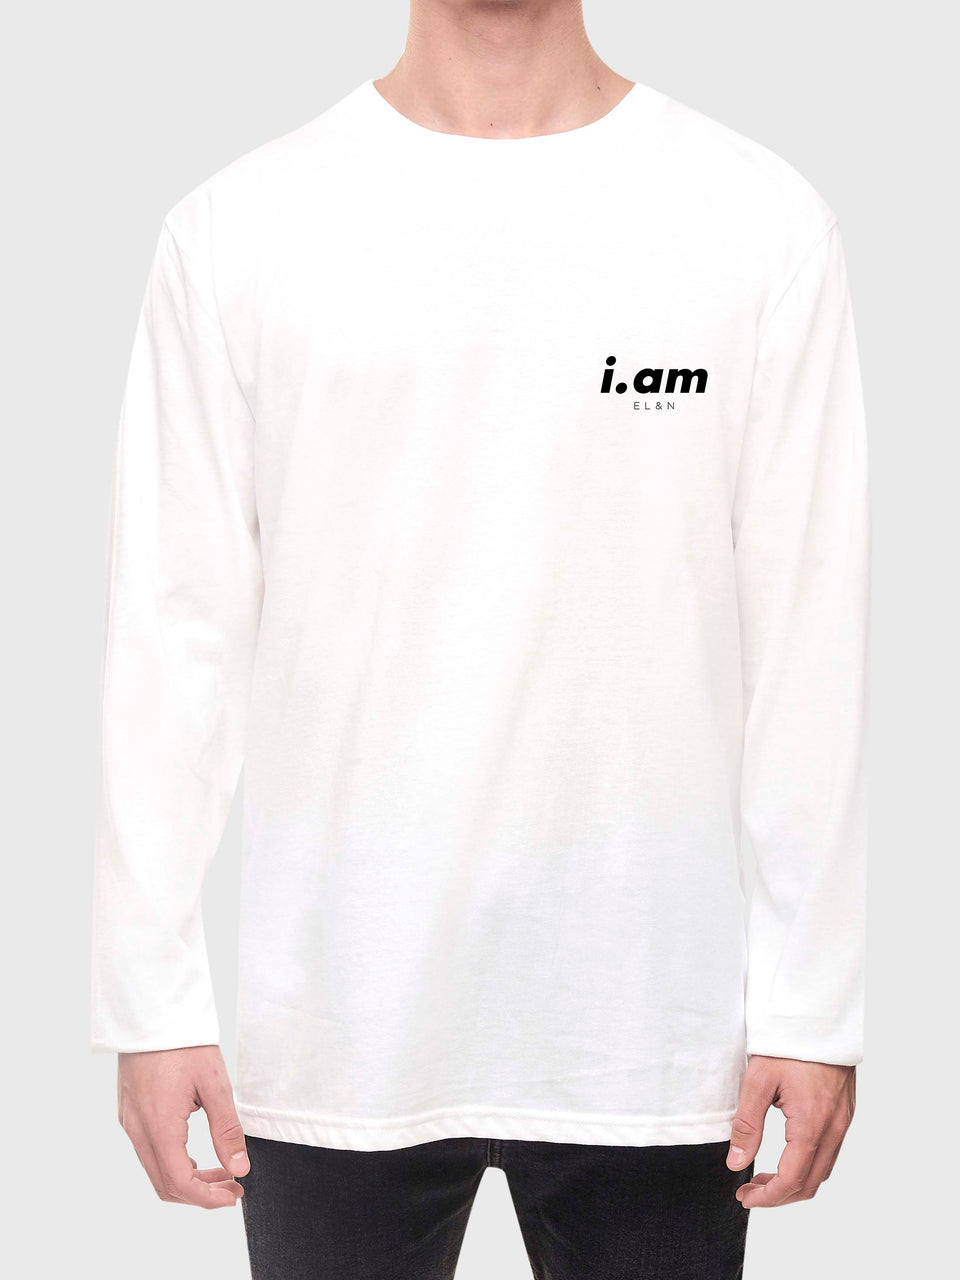 Made in London - White - Unisex long sleeve T